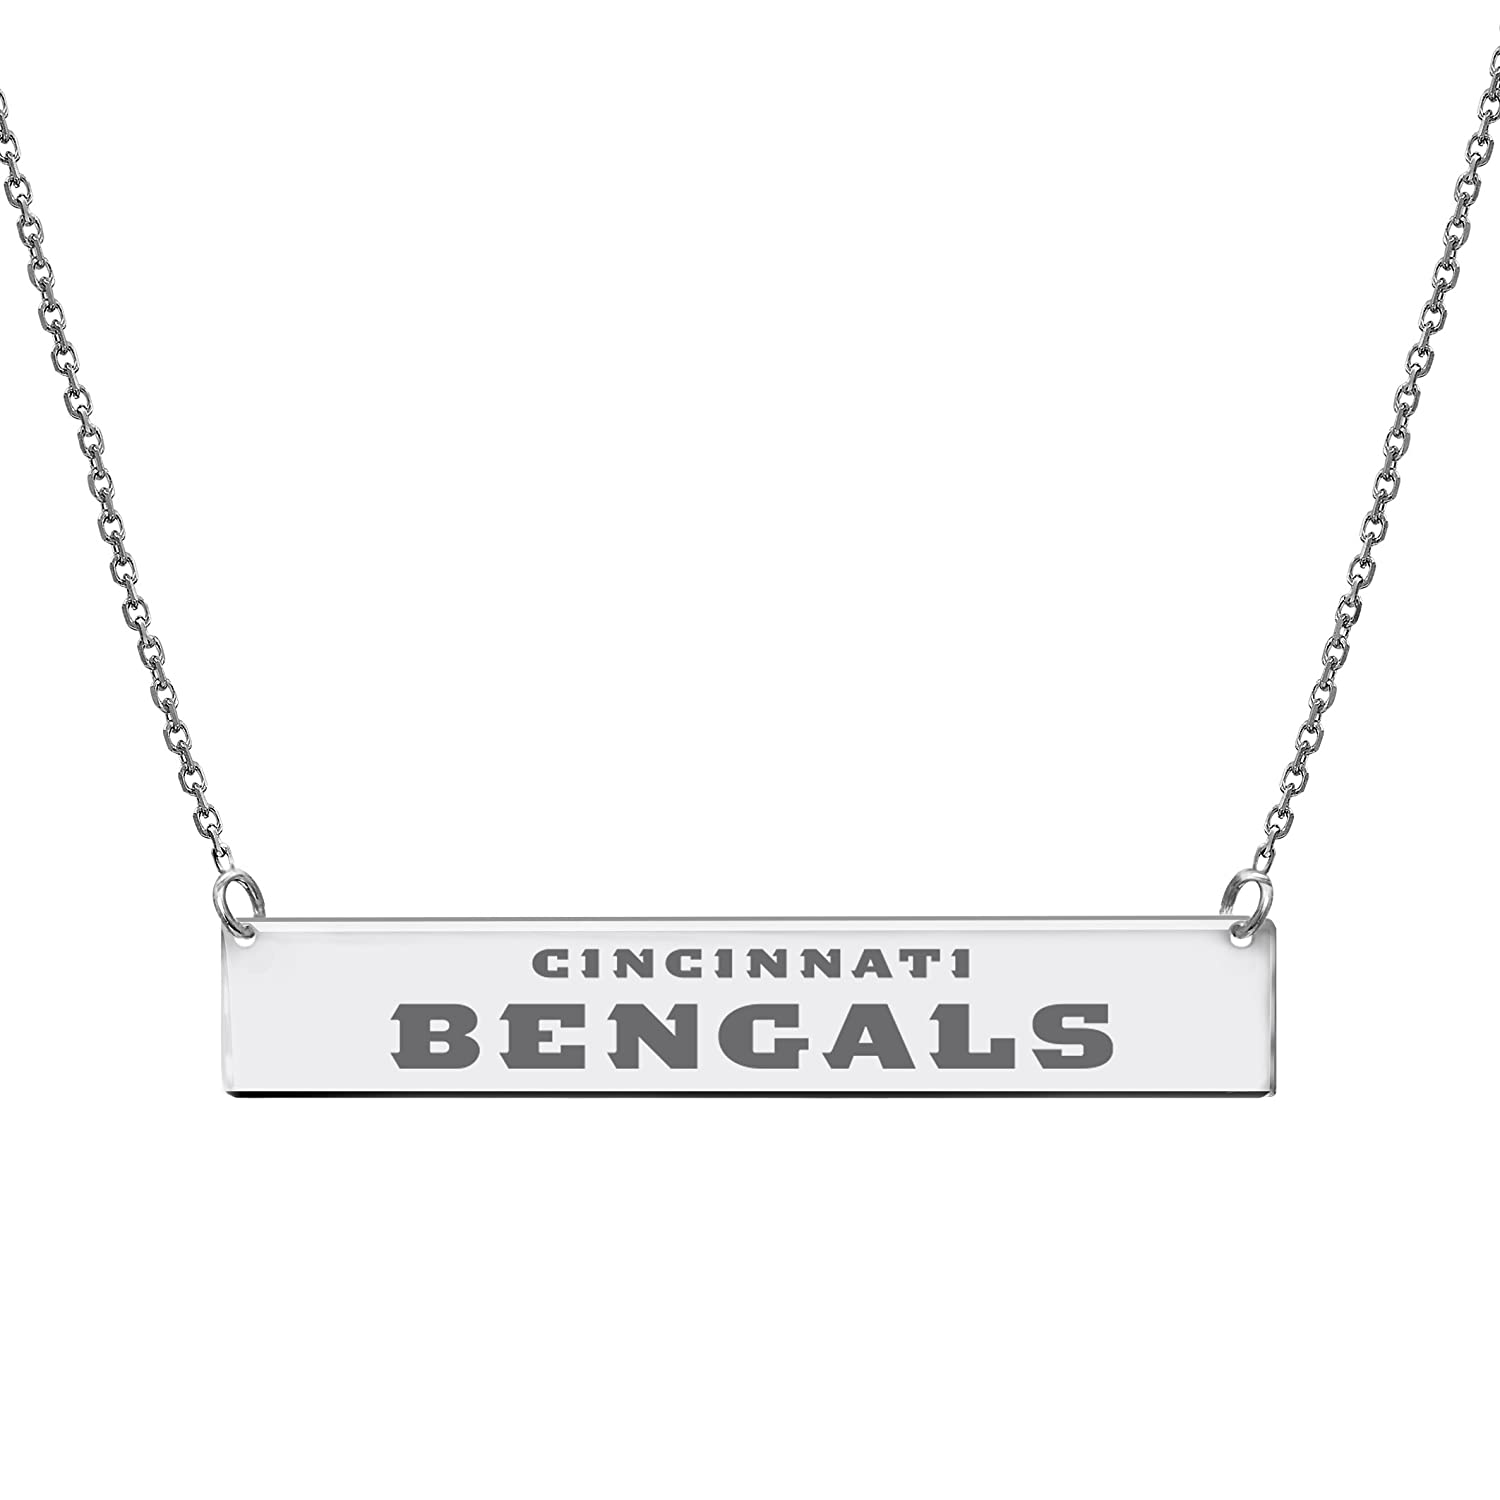 NFL Cincinnati Bengals Bar Necklace DiamondJewelryNY Silver Pendant